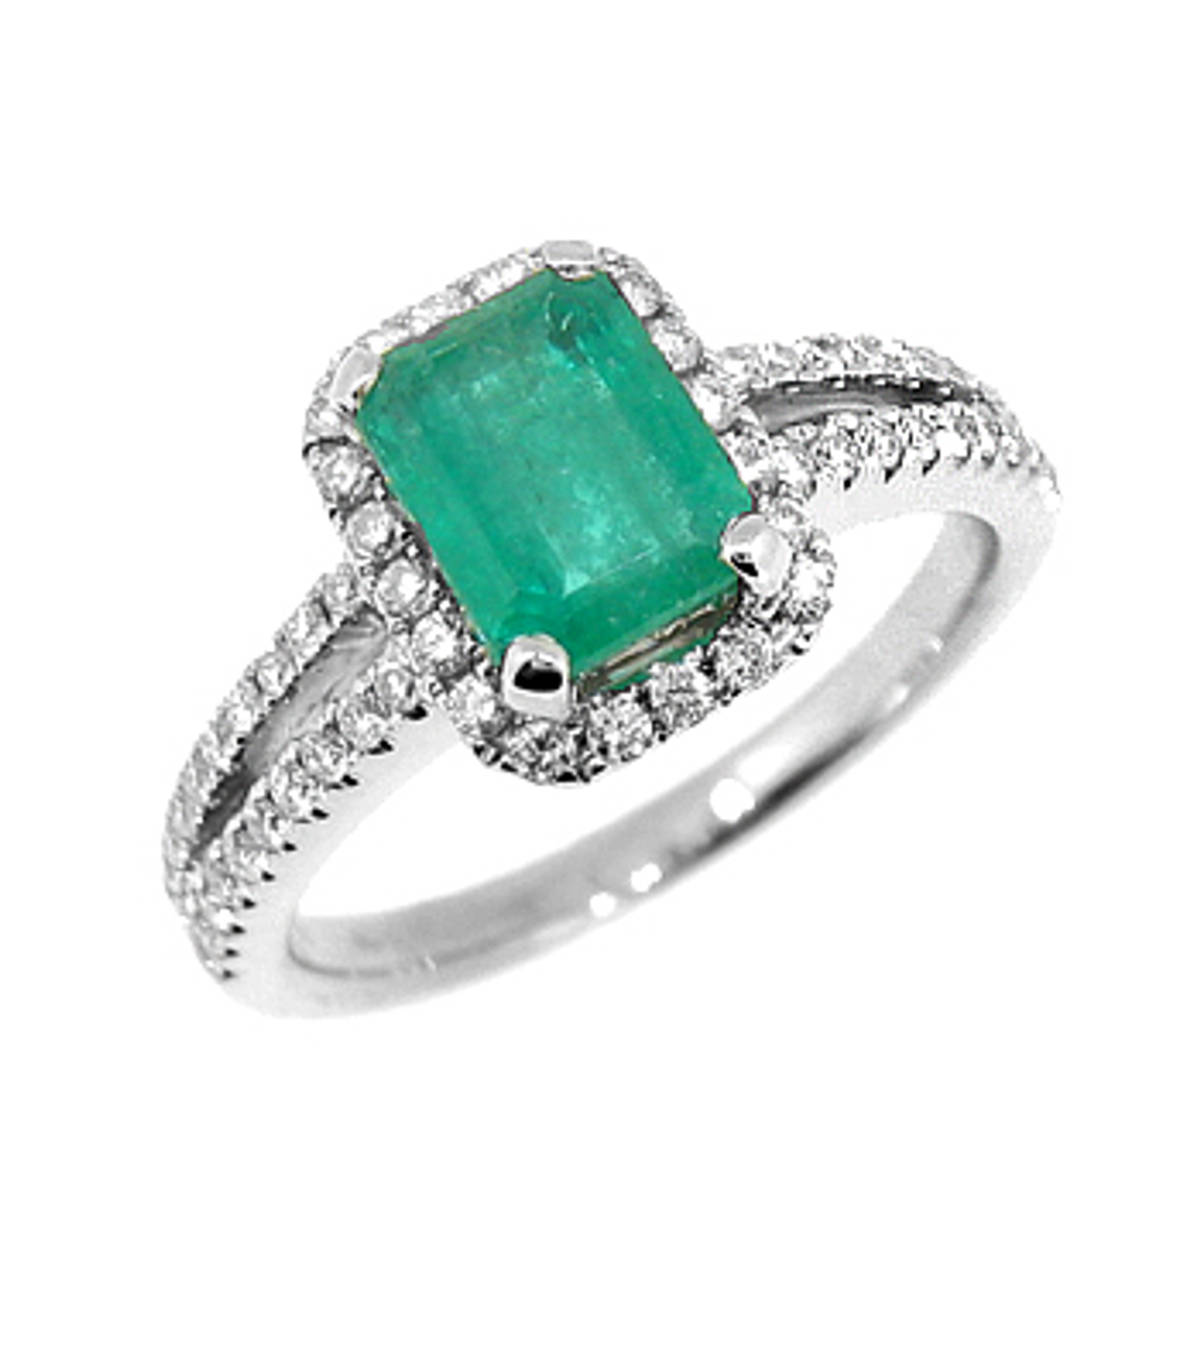 Emerald and diamond cluster ring,  double row diamond shoulders in 18 ct white gold